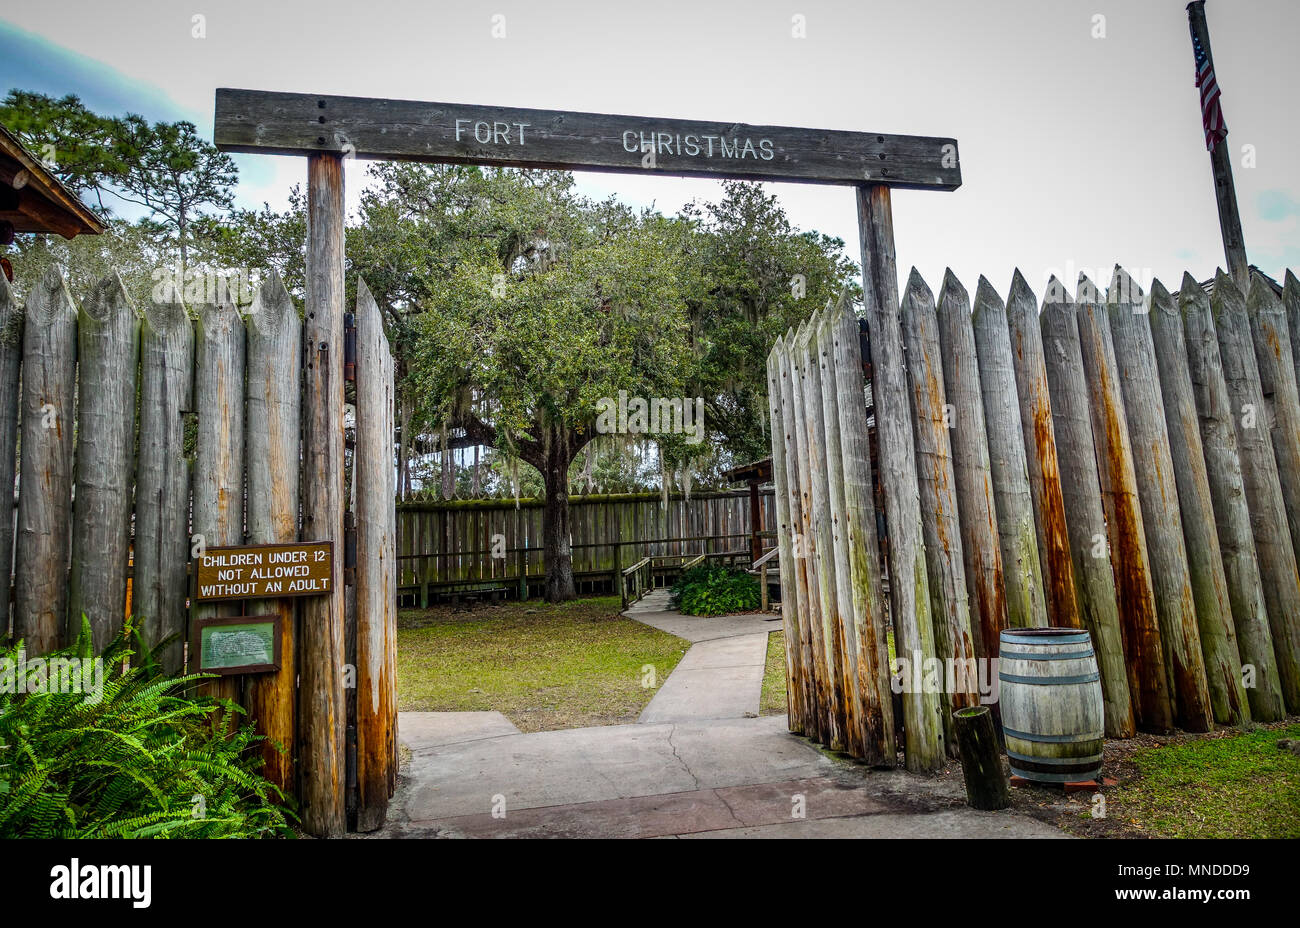 Fort Christmas Florida.Fort Christmas Historical Park In Orange County Central